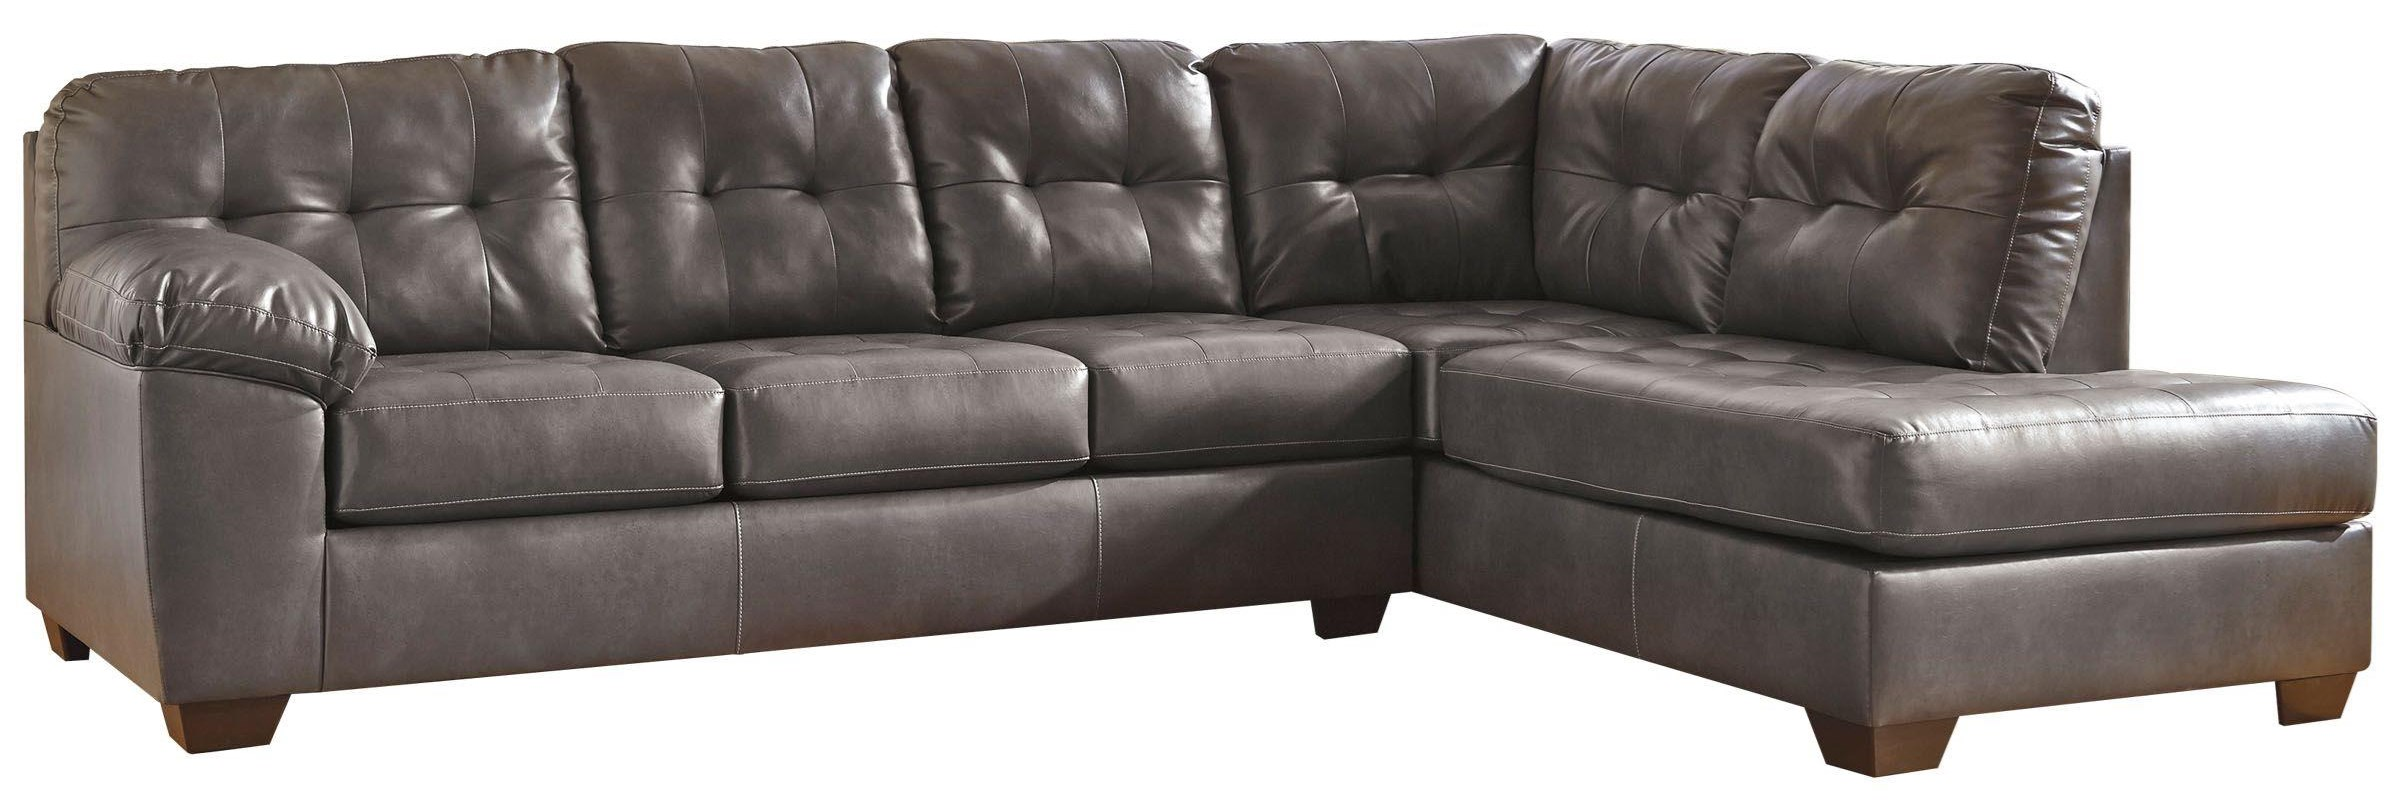 Alliston DuraBlend® - Gray Sectional w/ Right Chaise by Signature Design by Ashley at Value City Furniture